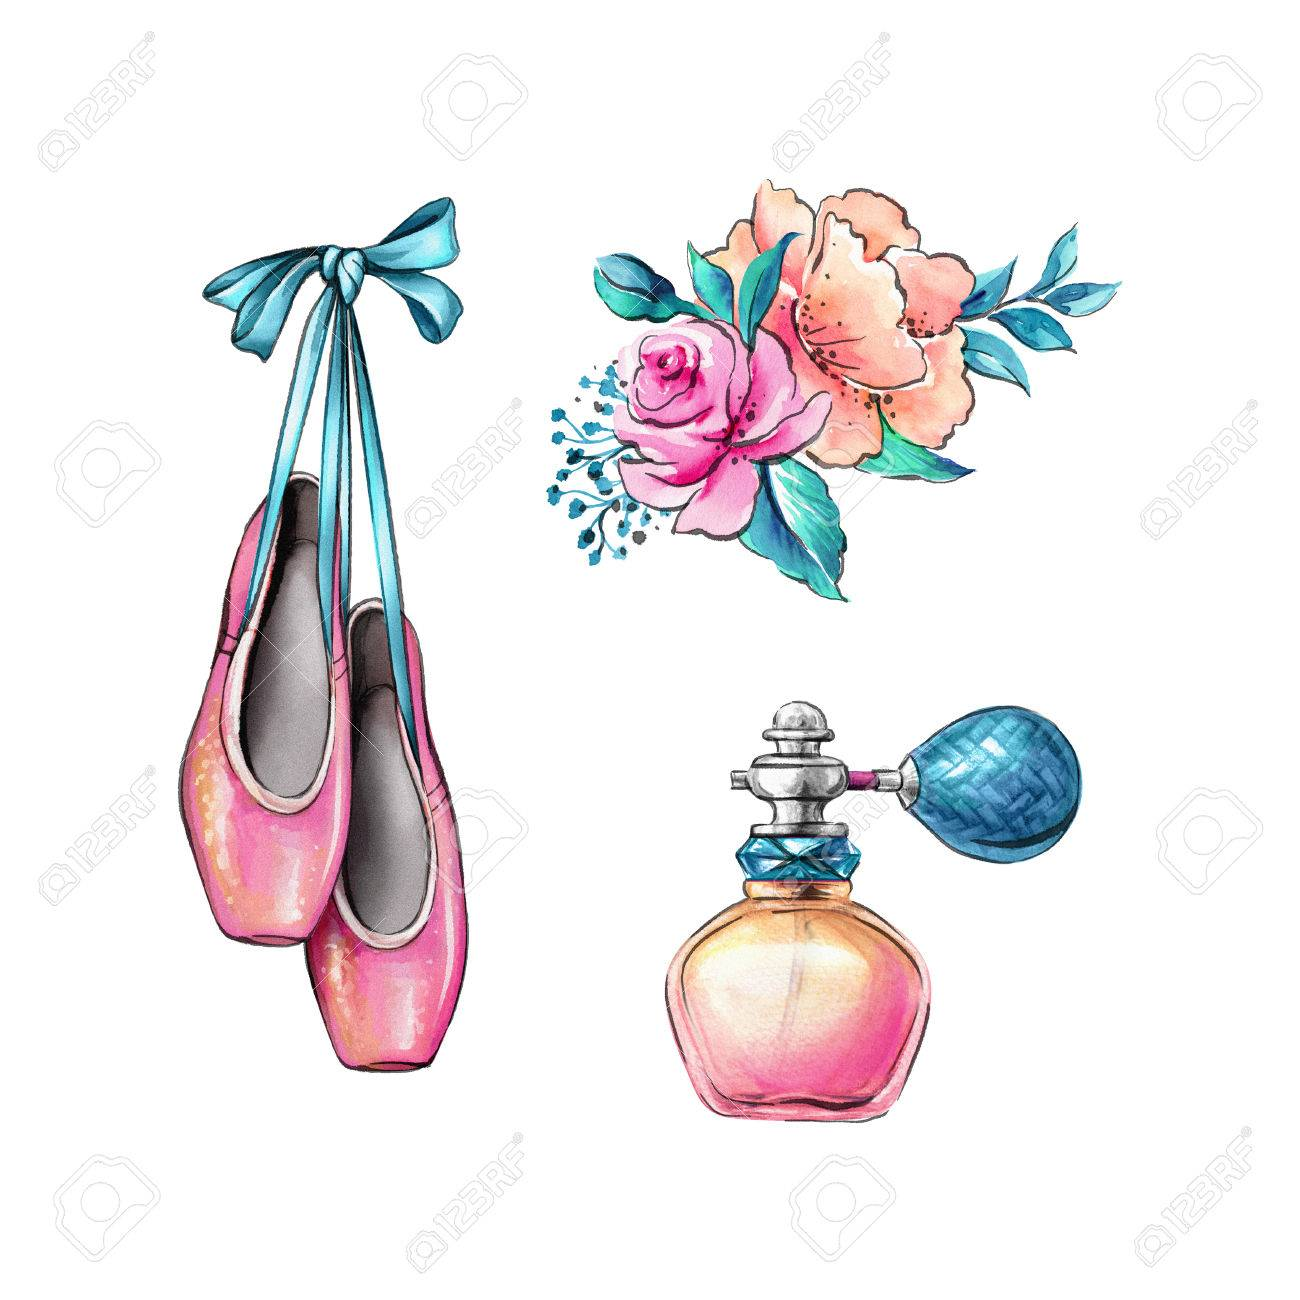 watercolor illustration ballerina shoes flowers fragrance stock